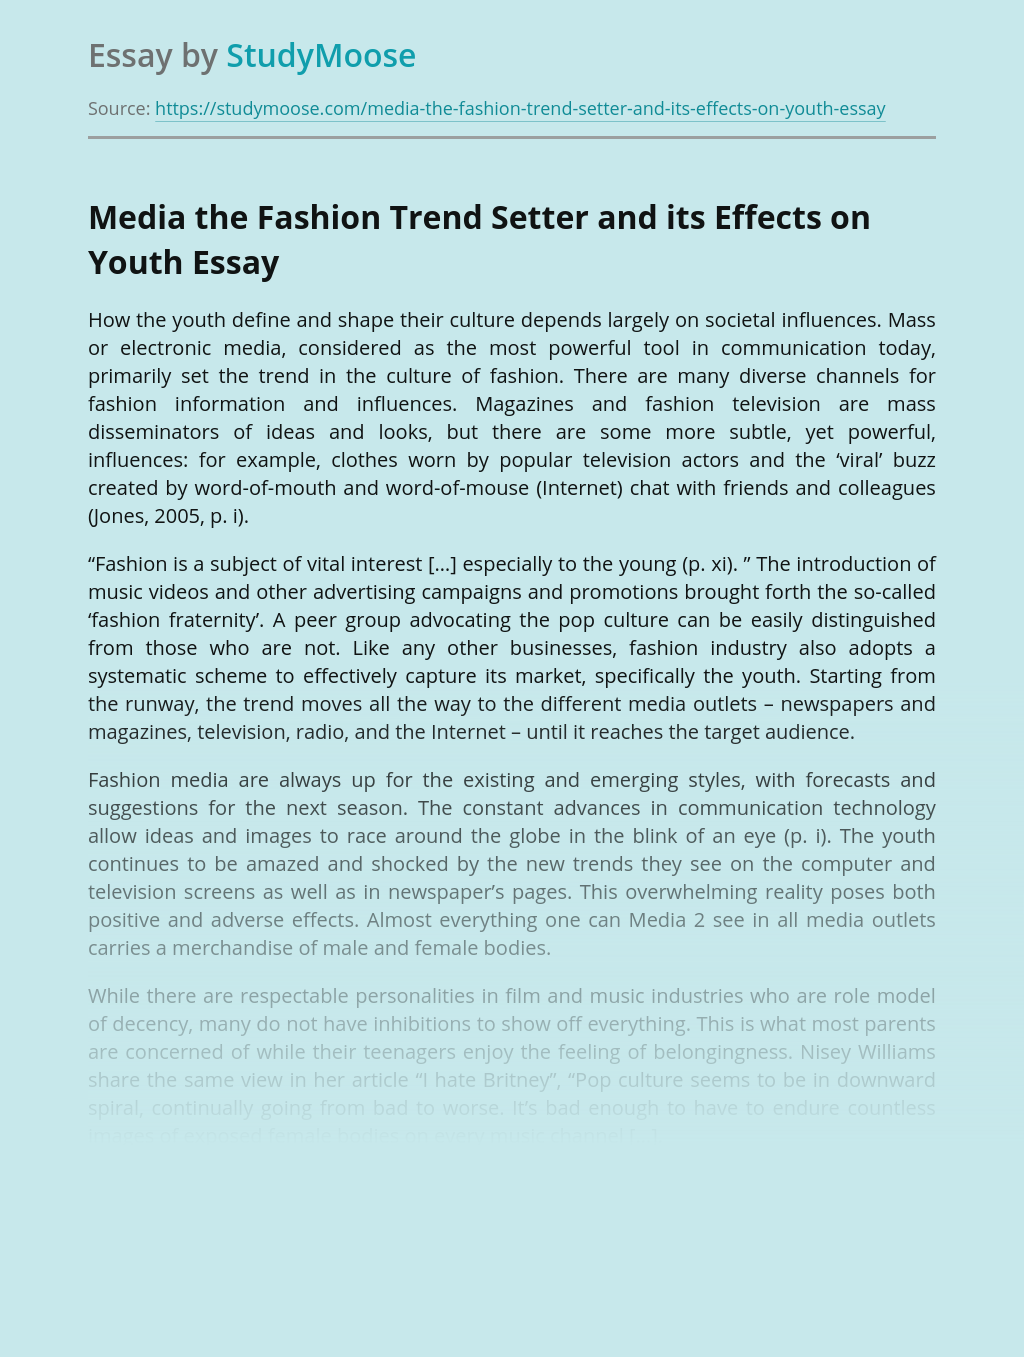 Media the Fashion Trend Setter and its Effects on Youth